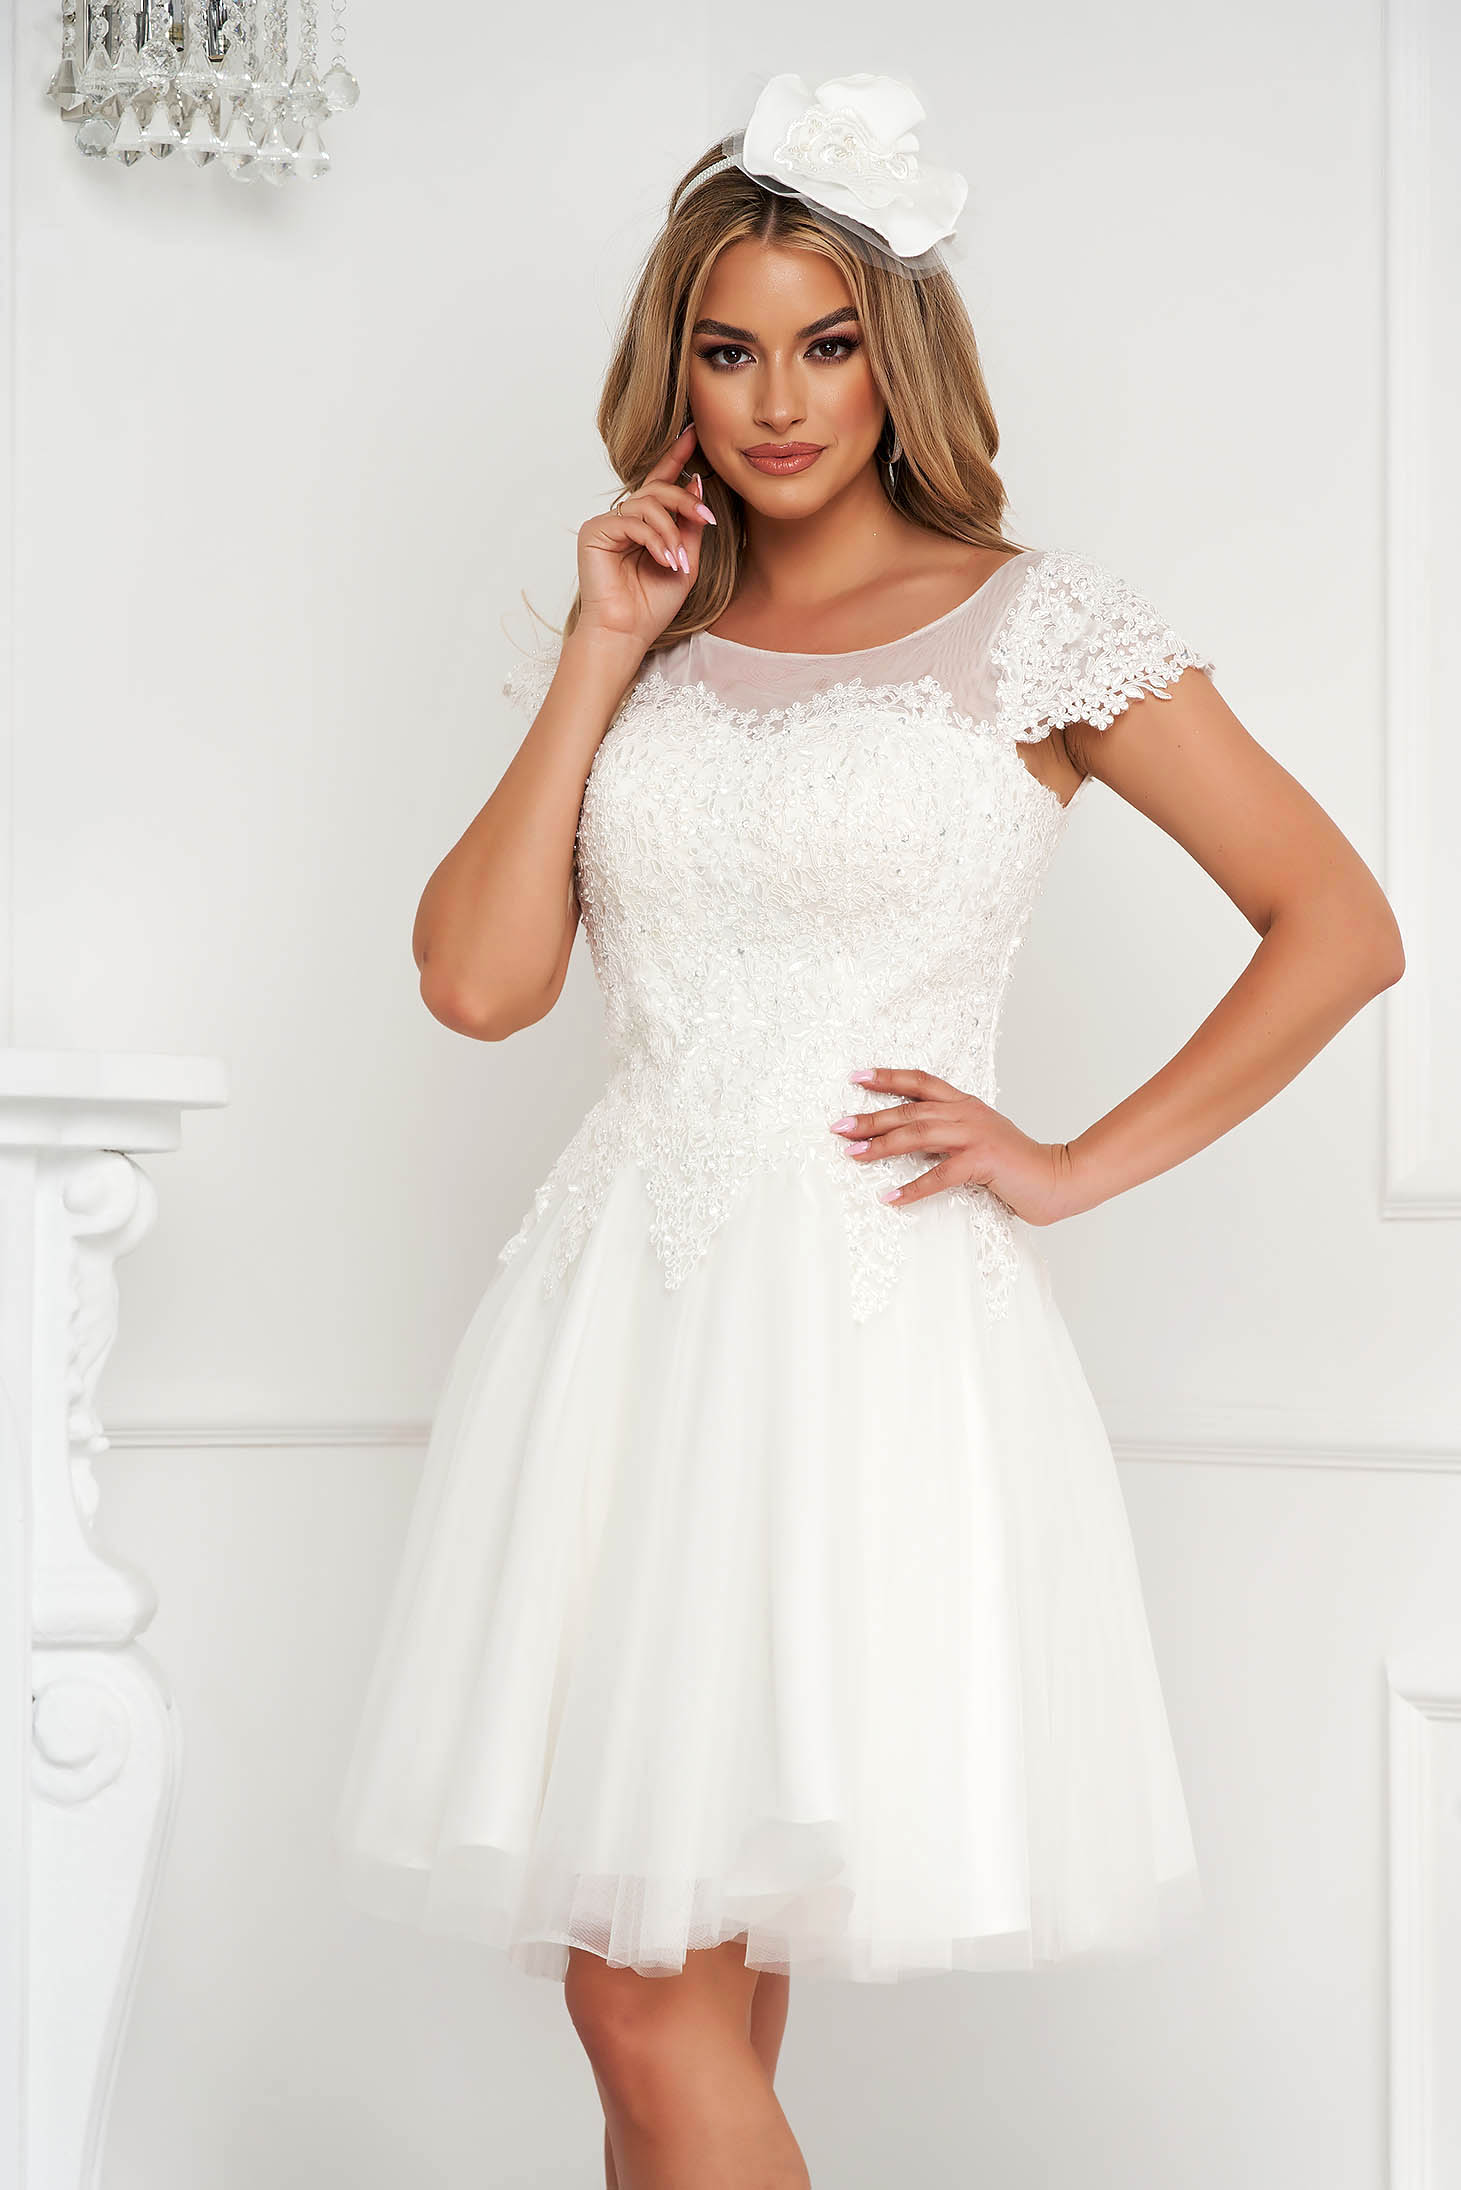 White dress short cut occasional cloche from tulle with embroidery details with pearls